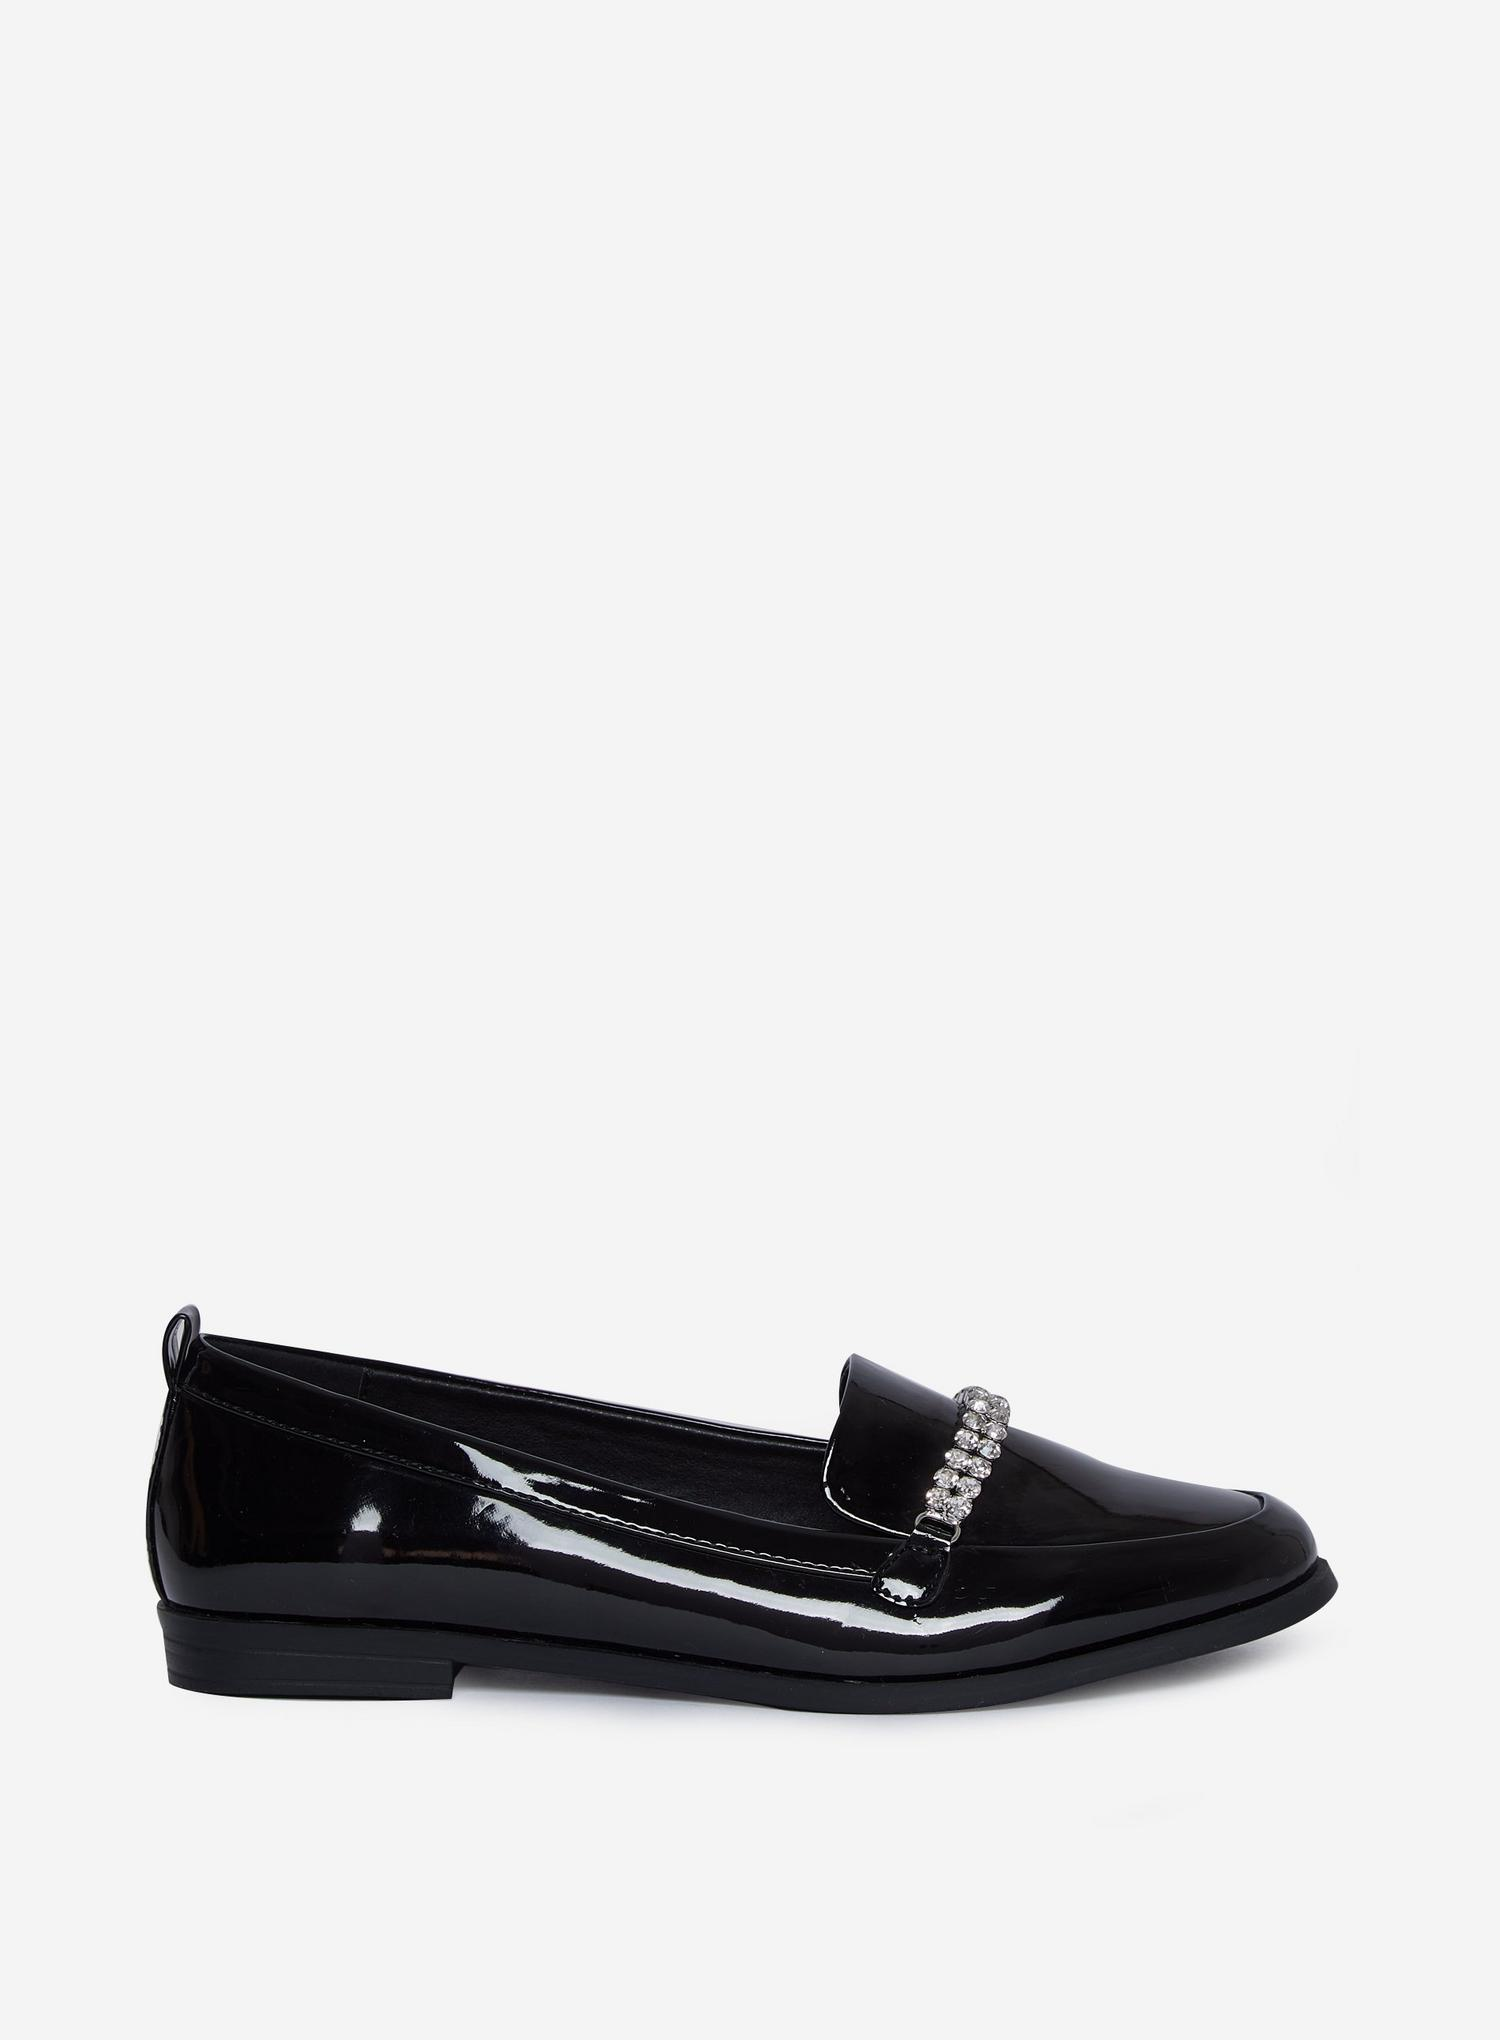 105 Black Lightning Loafers image number 2